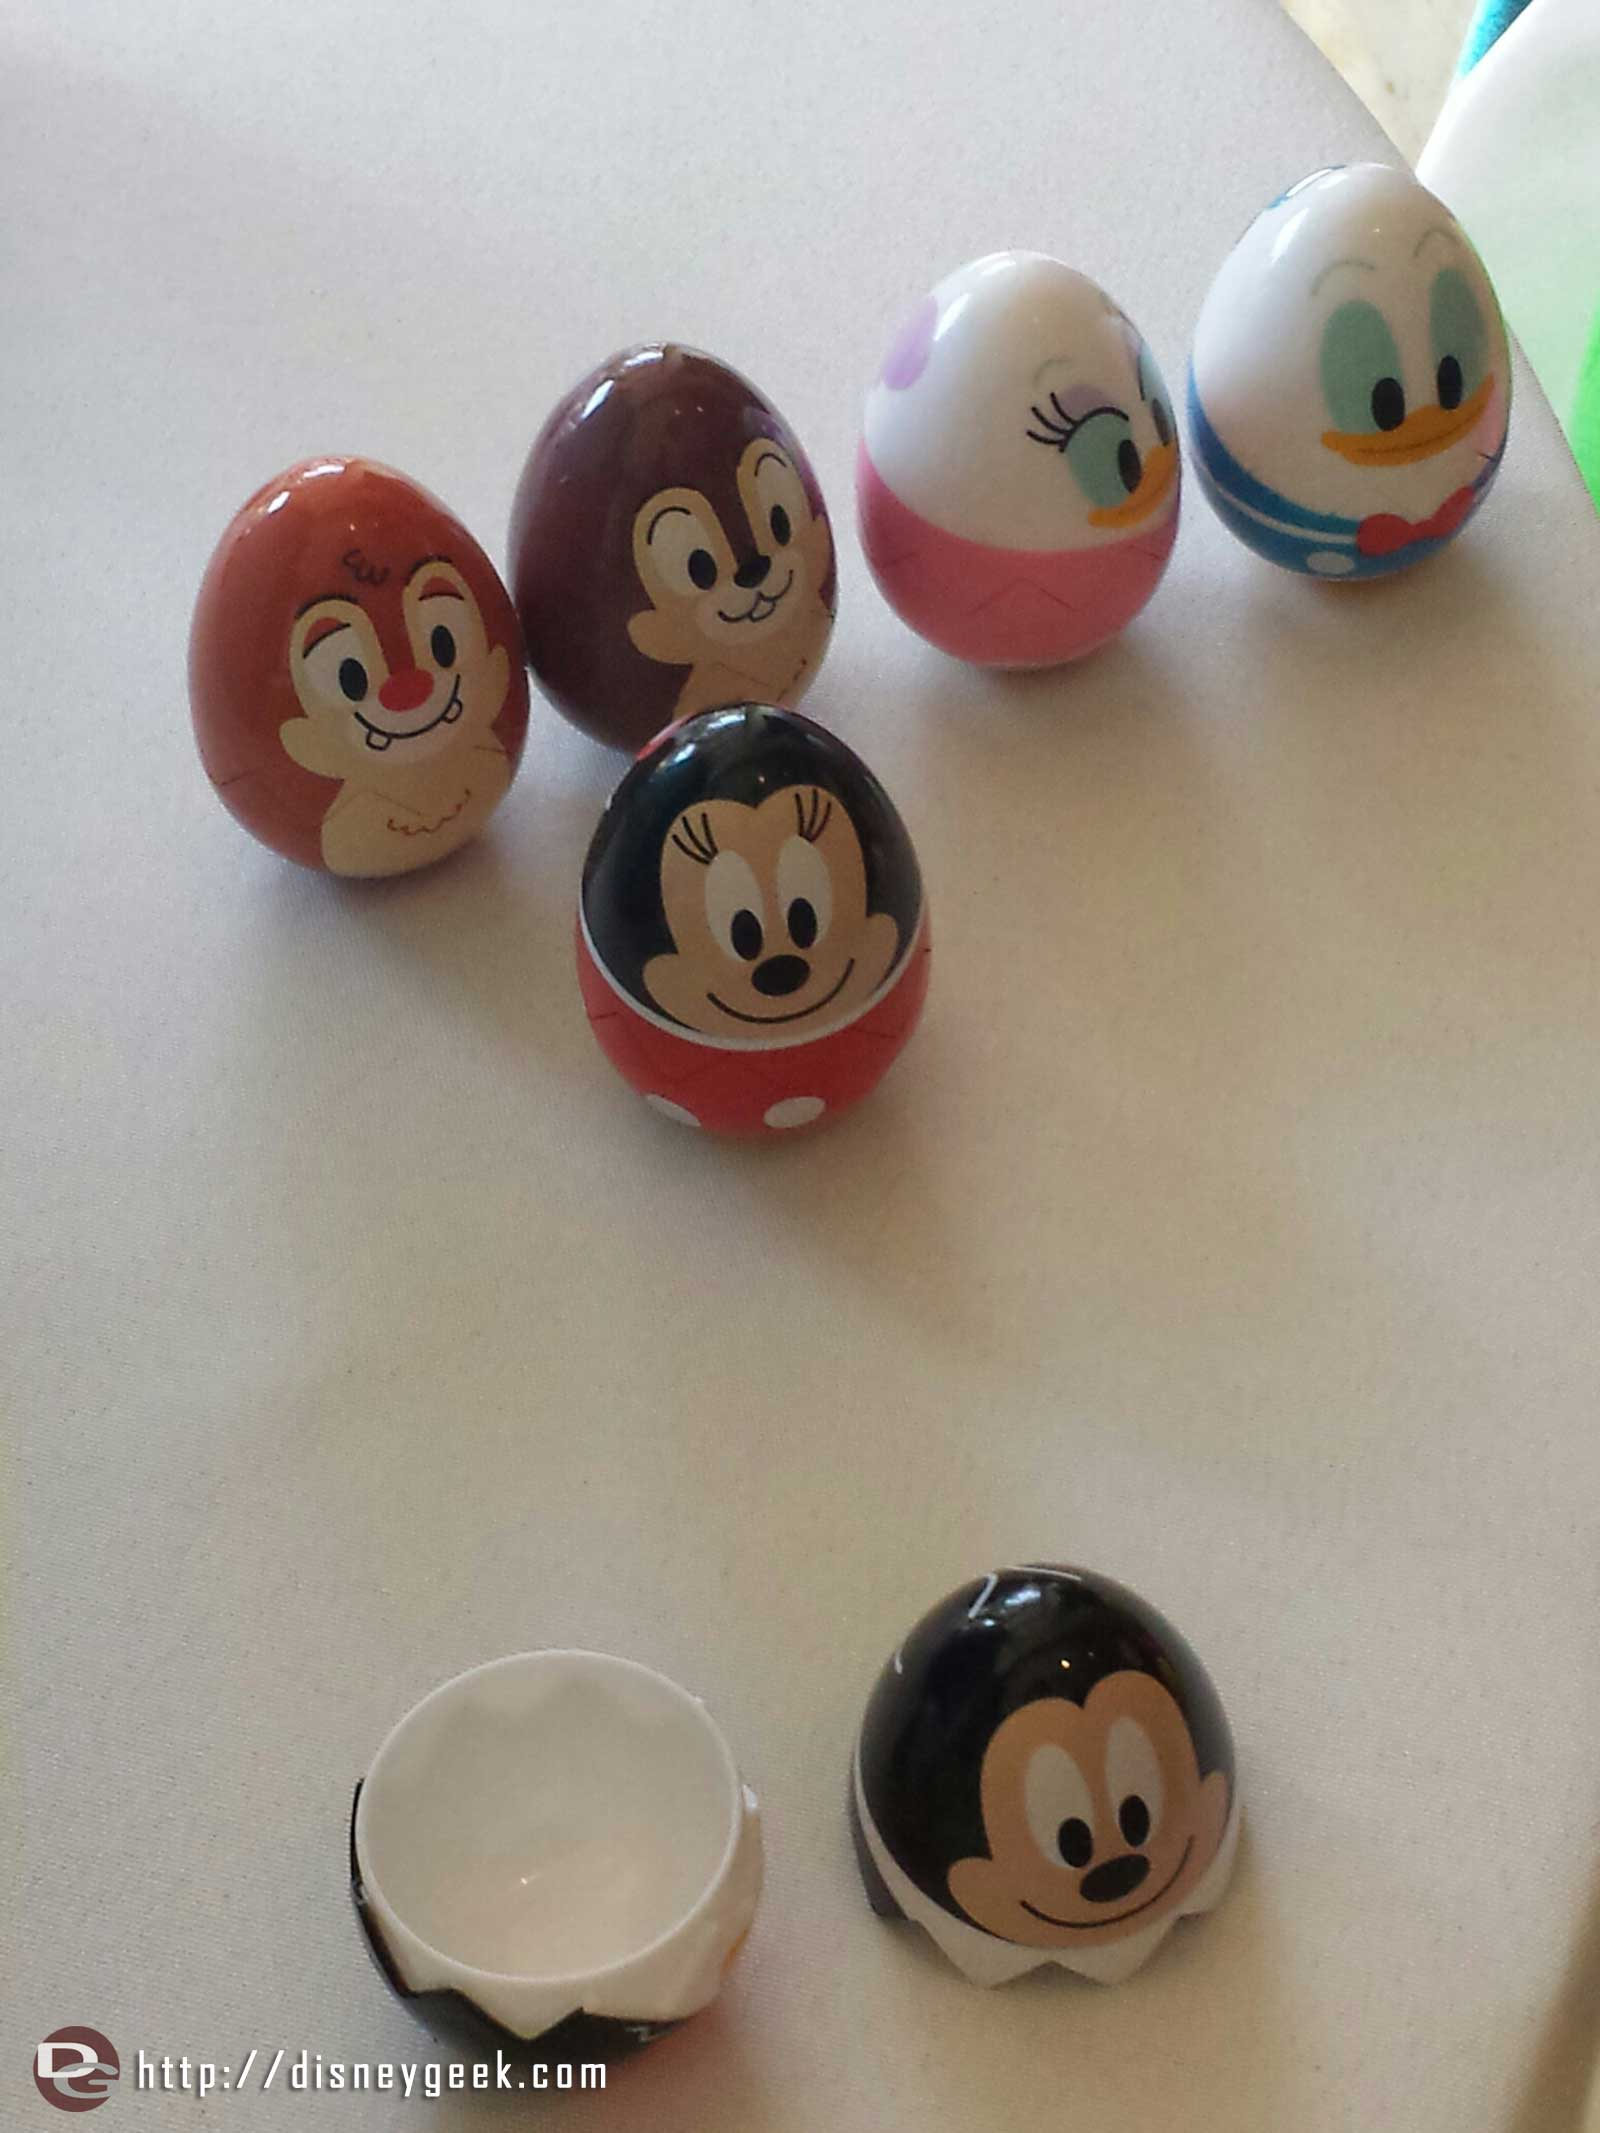 A look at the prize.. after completing your hunt you get one of these eggs